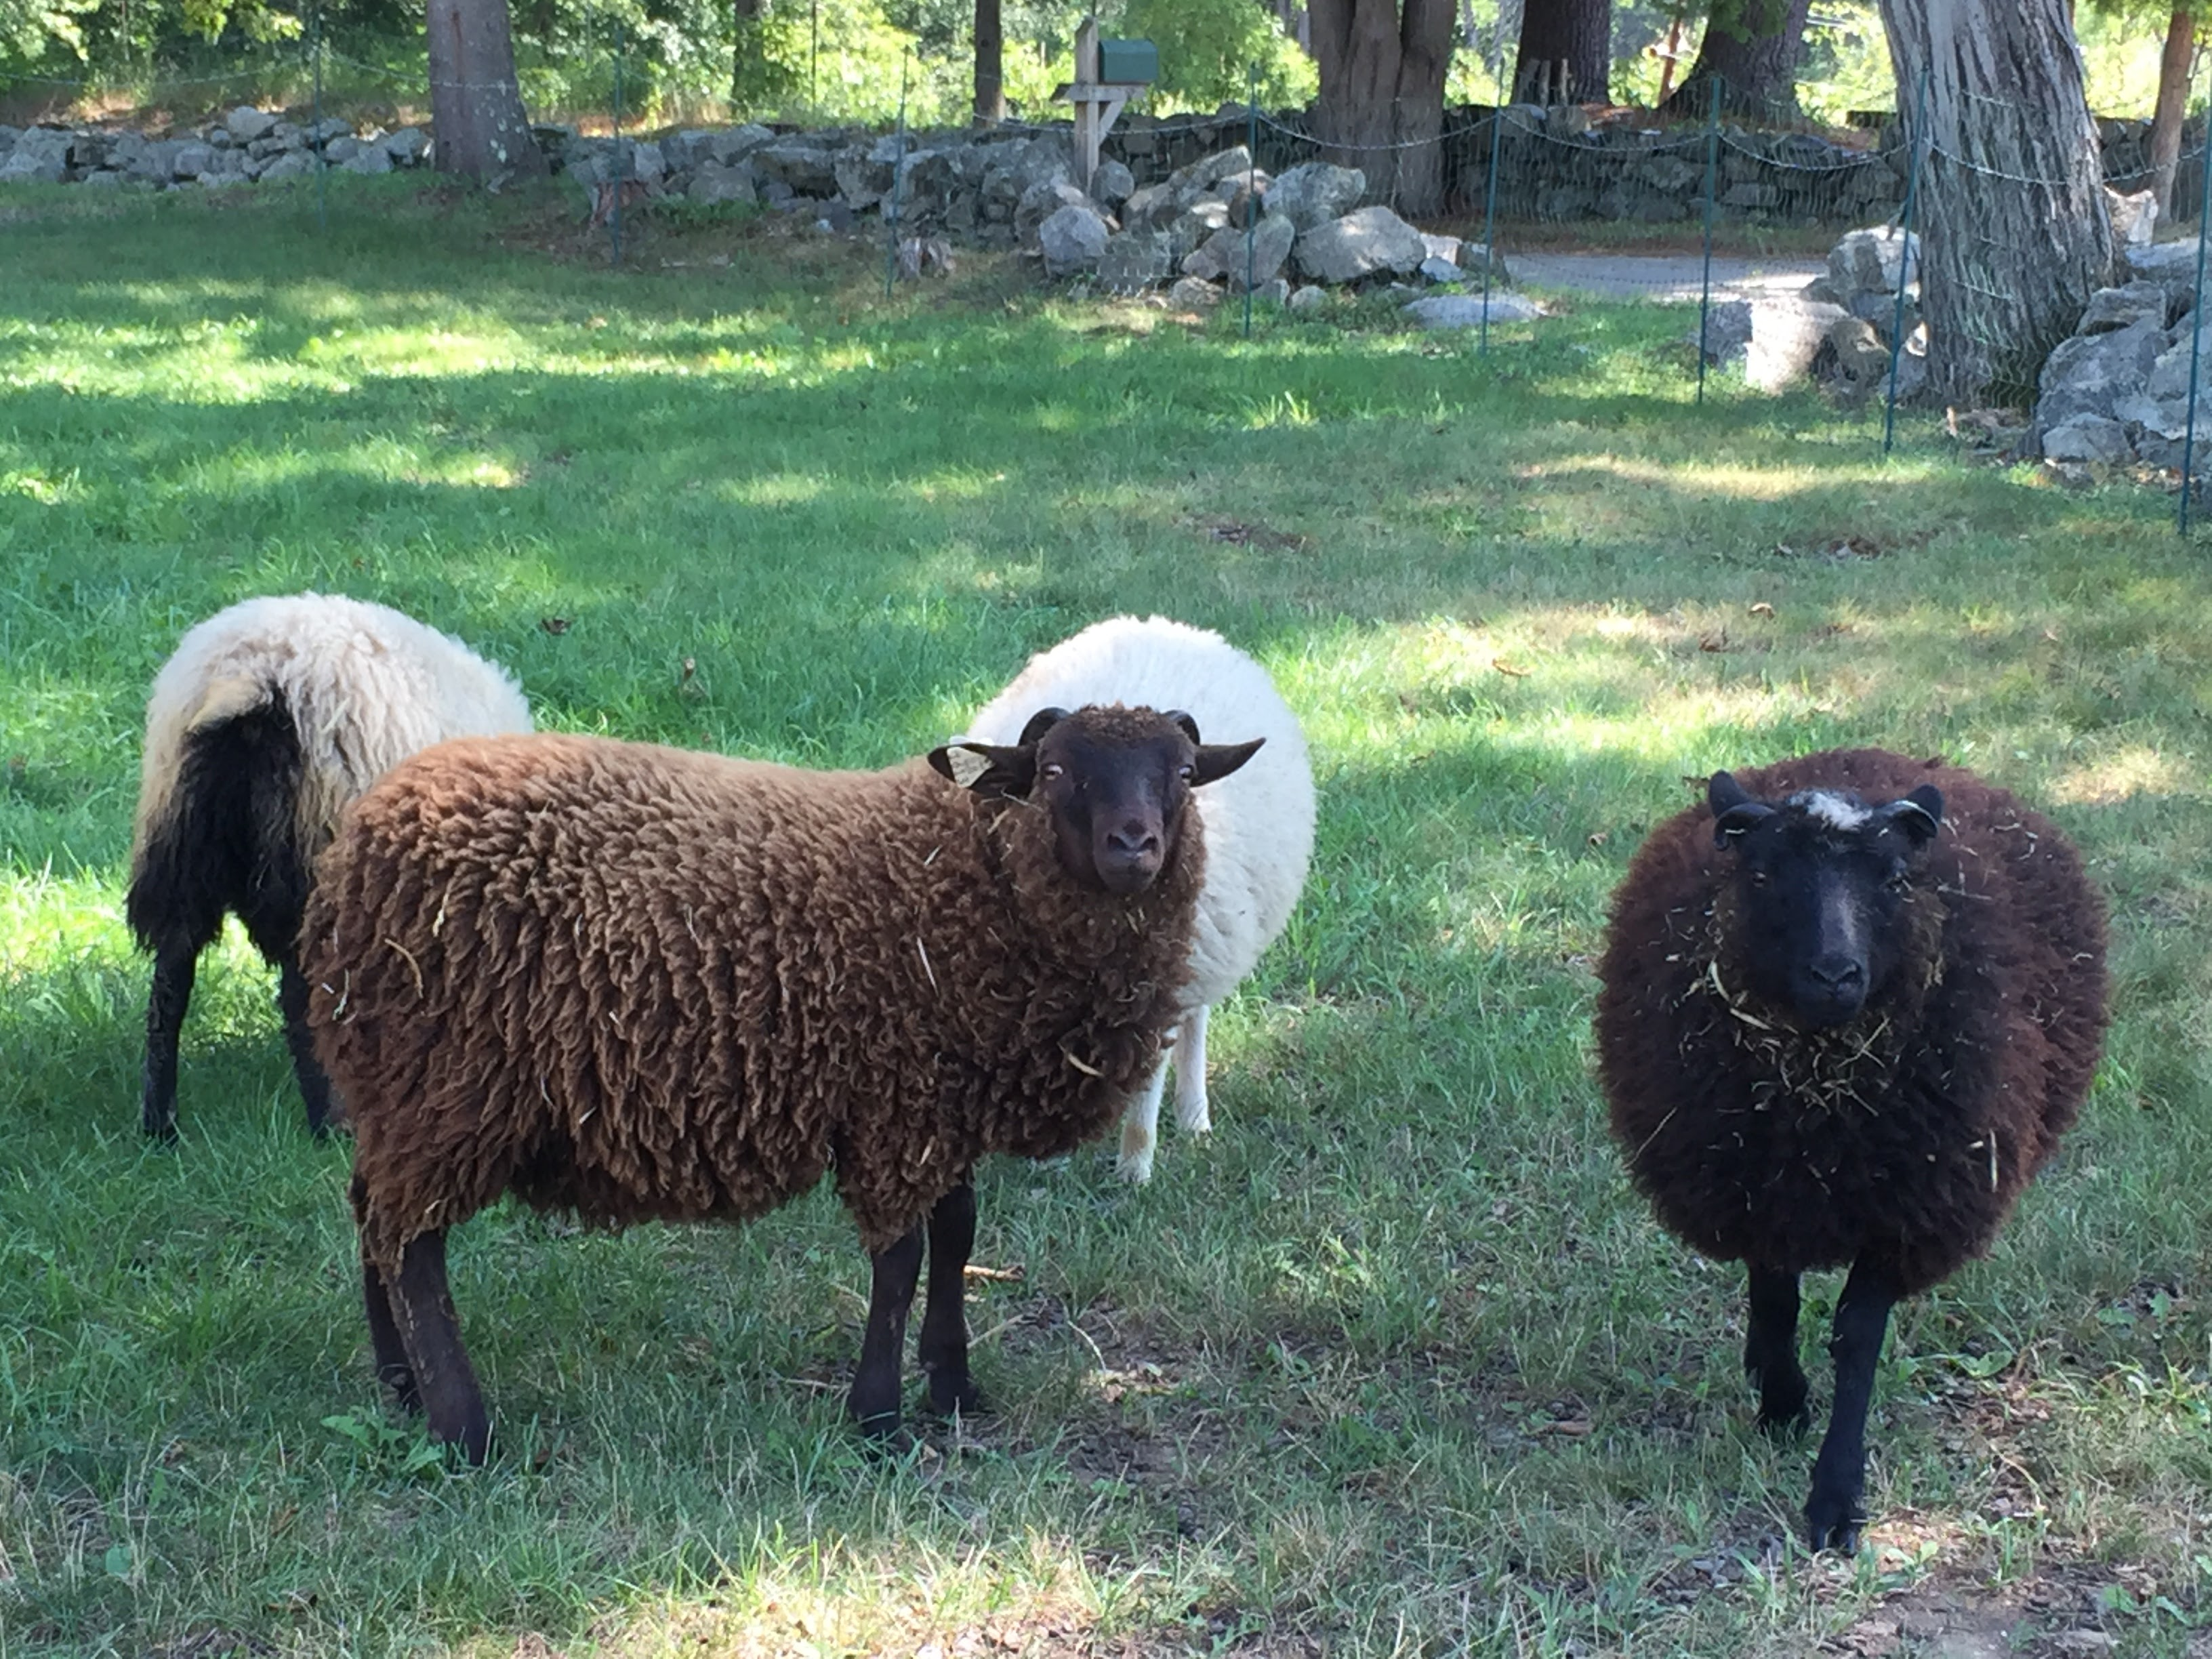 Our four shetland sheep grazing and looking at the camera